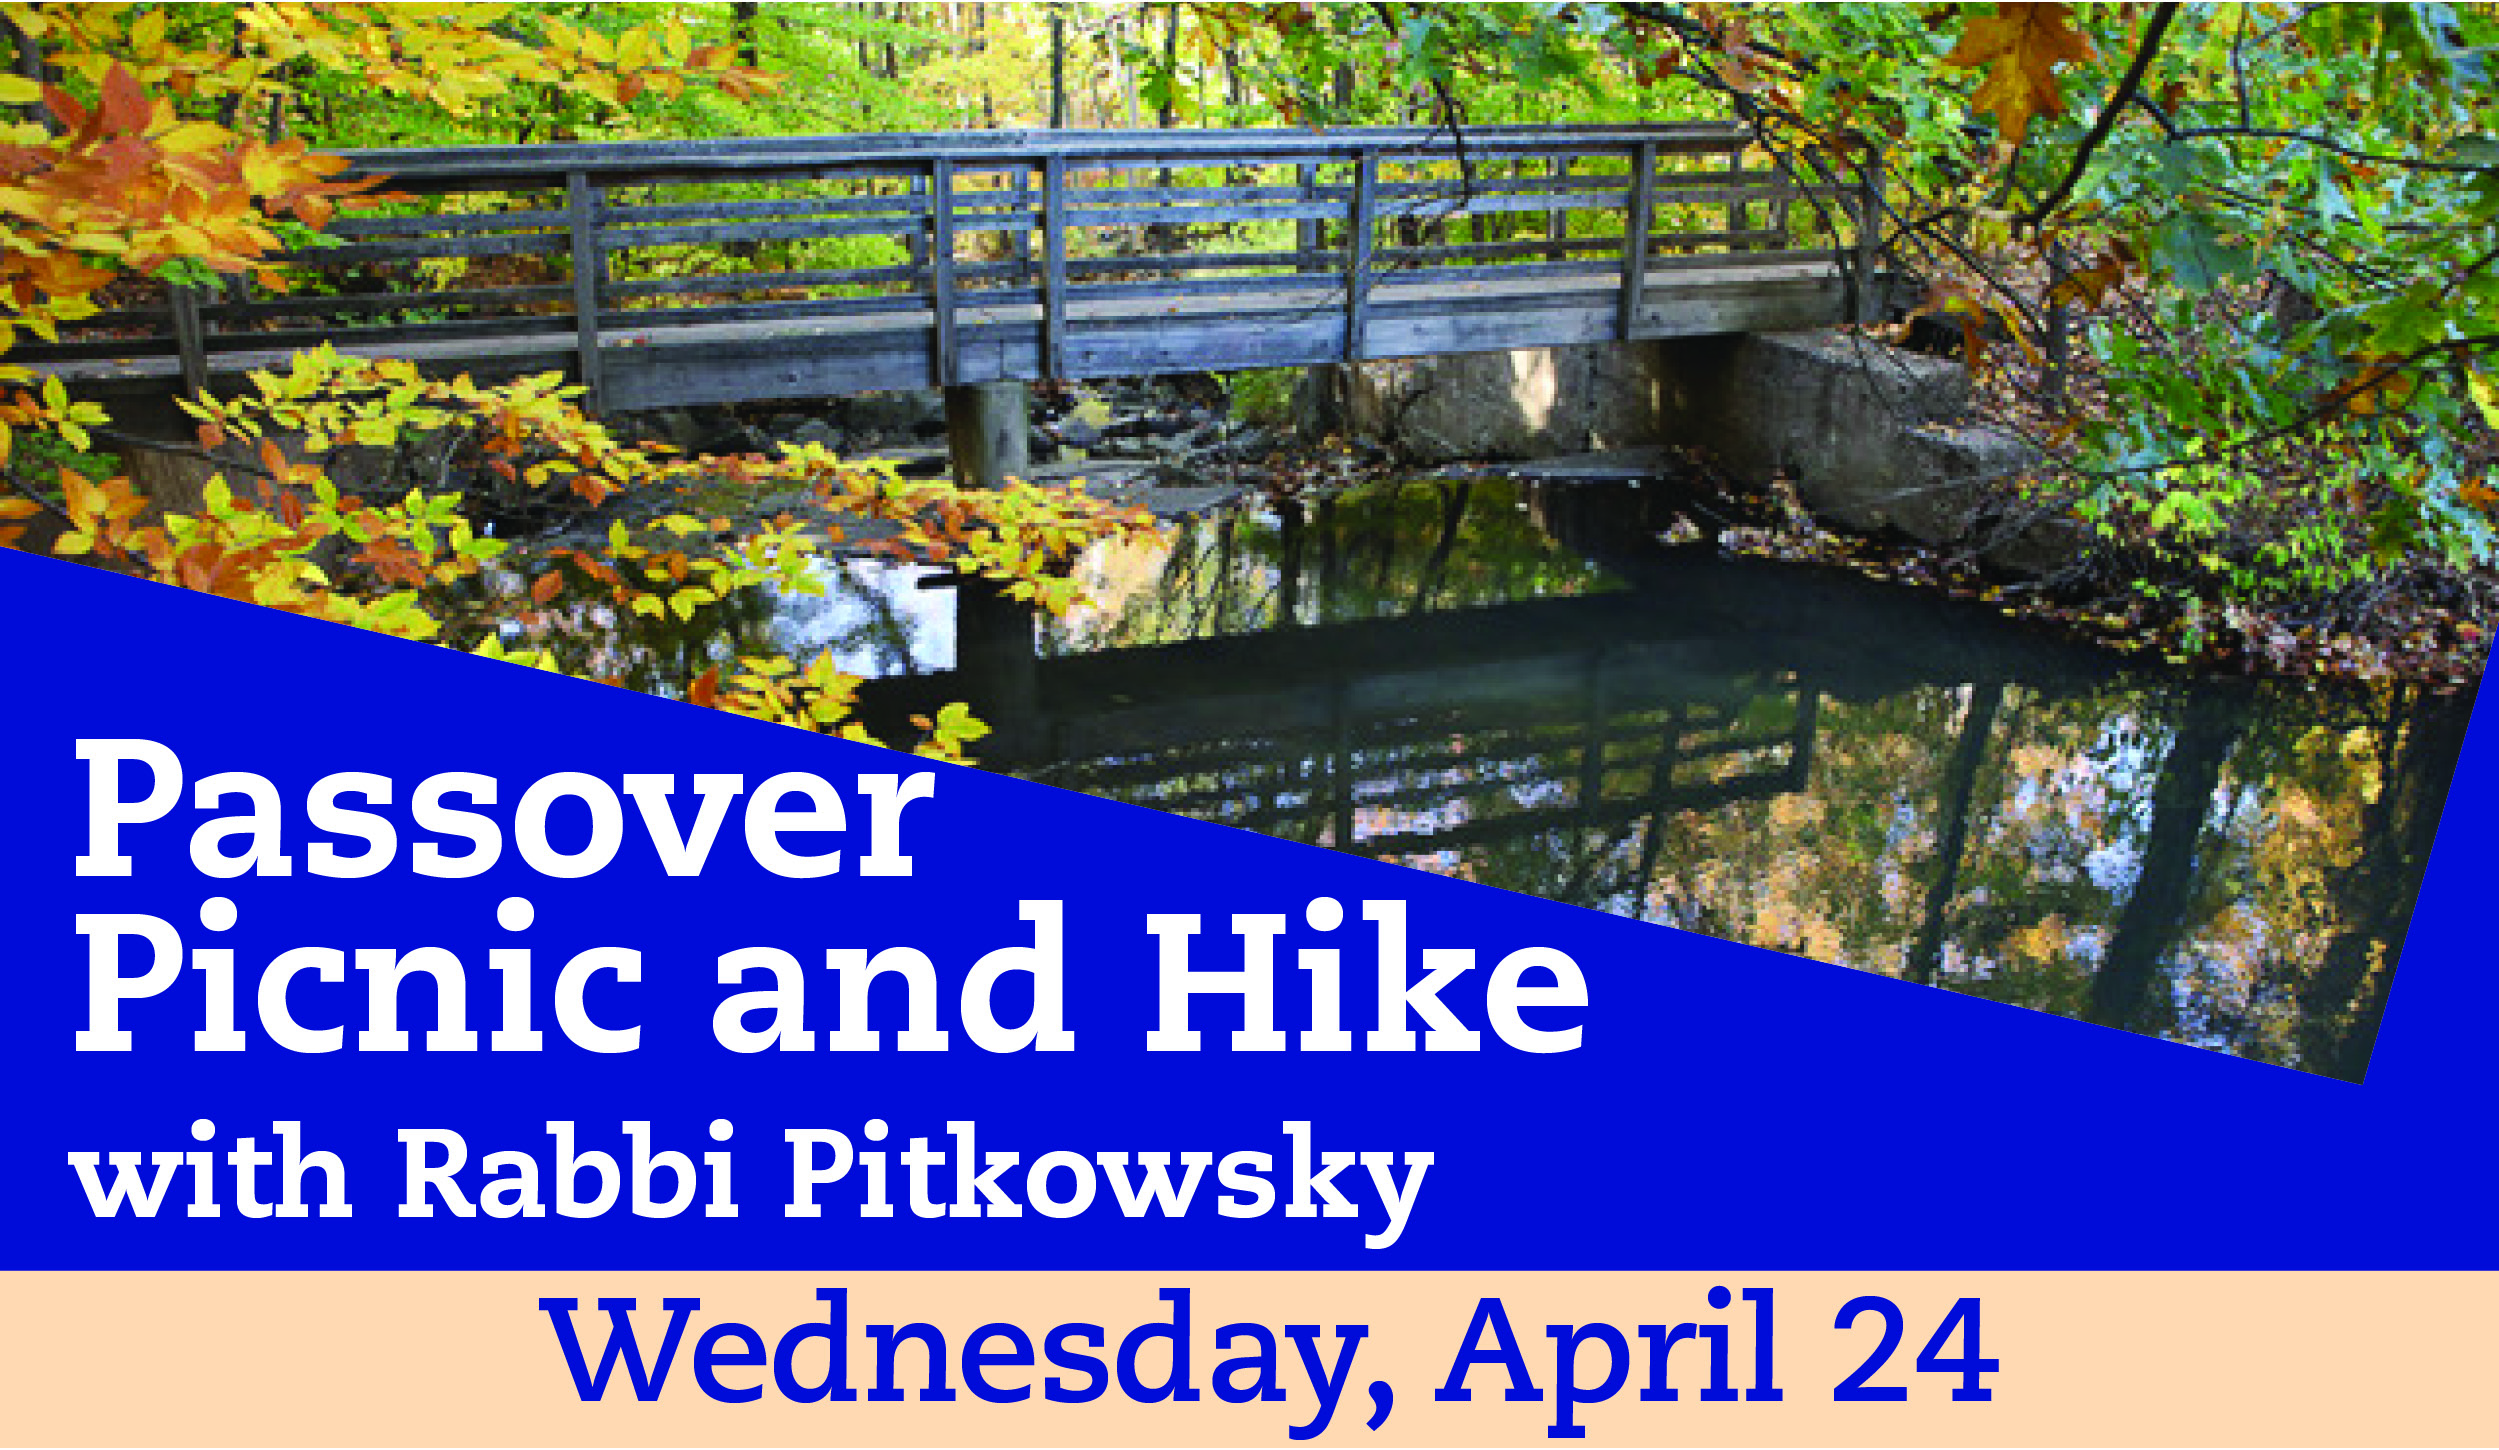 """<a href=""""https://www.cbsteaneck.org/event/passover-picnic-and-hike.html""""                                     target="""""""">                                                                 <span class=""""slider_title"""">                                     Passover Picnic                                </span>                                                                 </a>"""